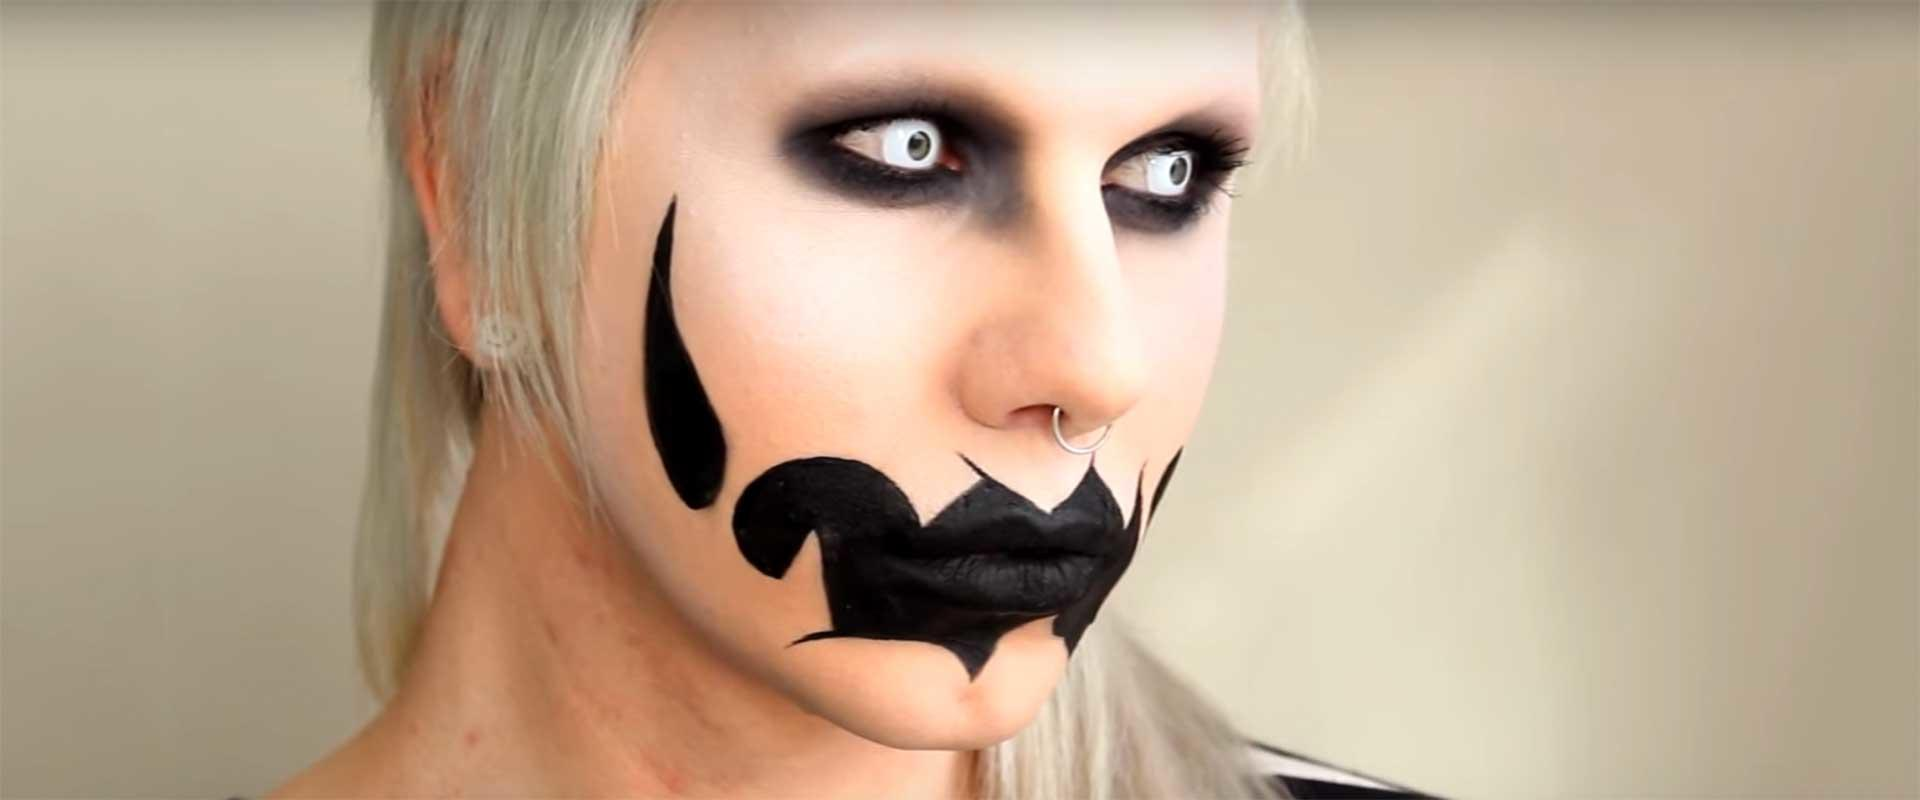 13 Scary Halloween Makeup Looks to Try